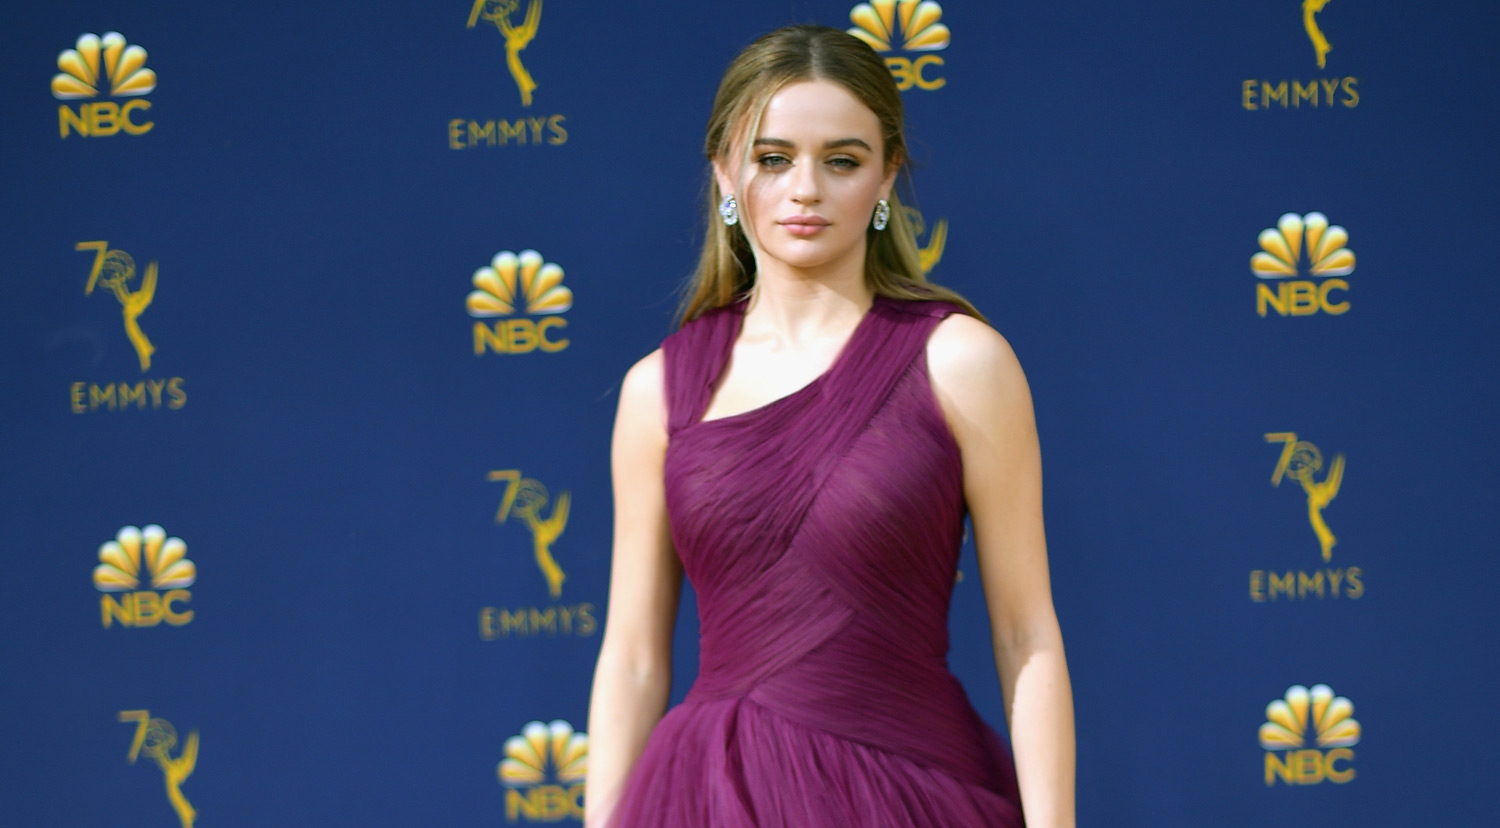 Emmy awards 2019 date in Melbourne